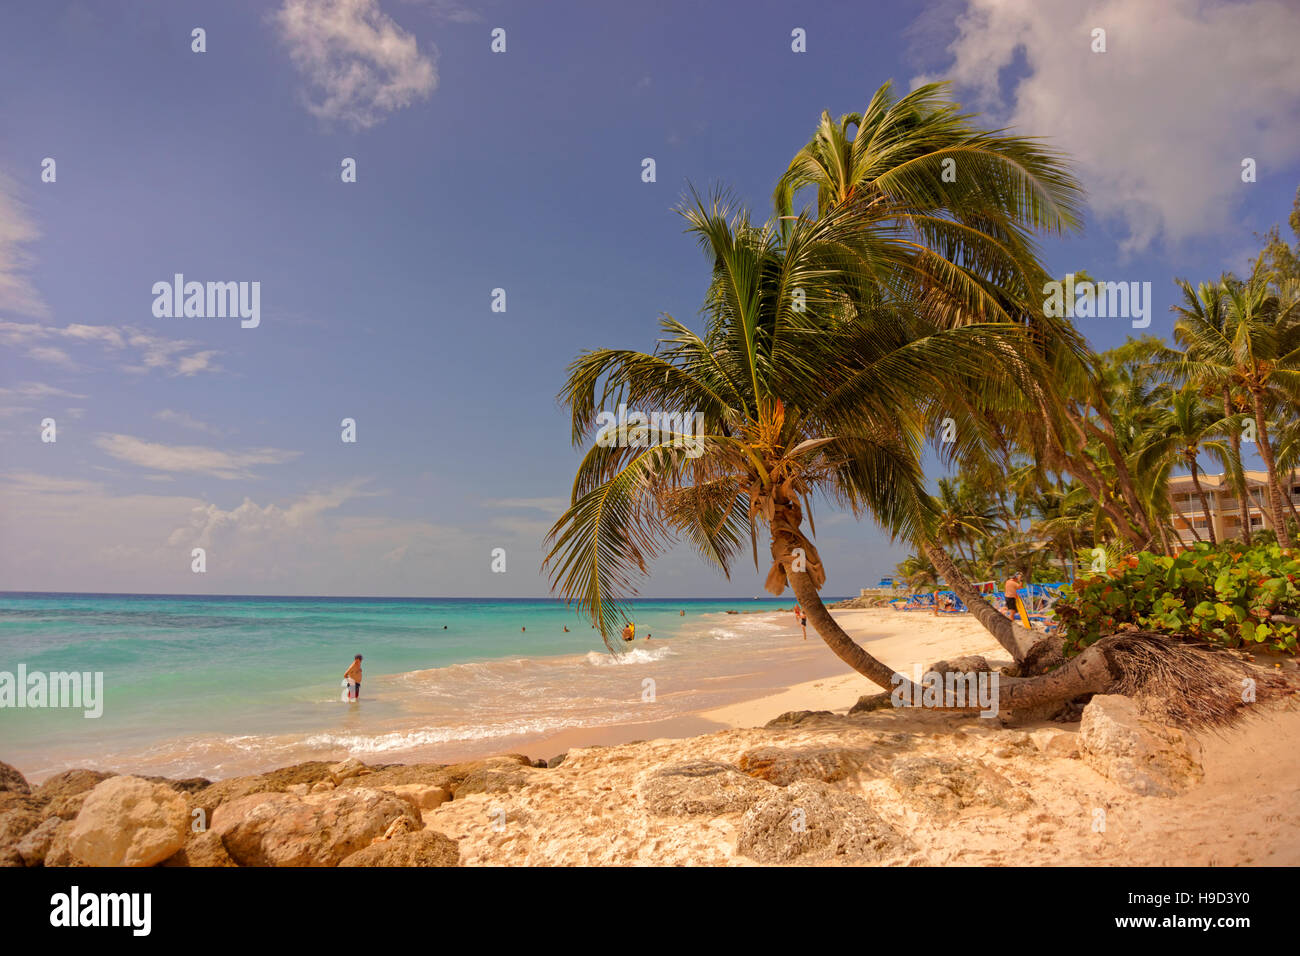 Dover Beach, St. Lawrence Gap, South coast, Barbados, Caribbean - Stock Image